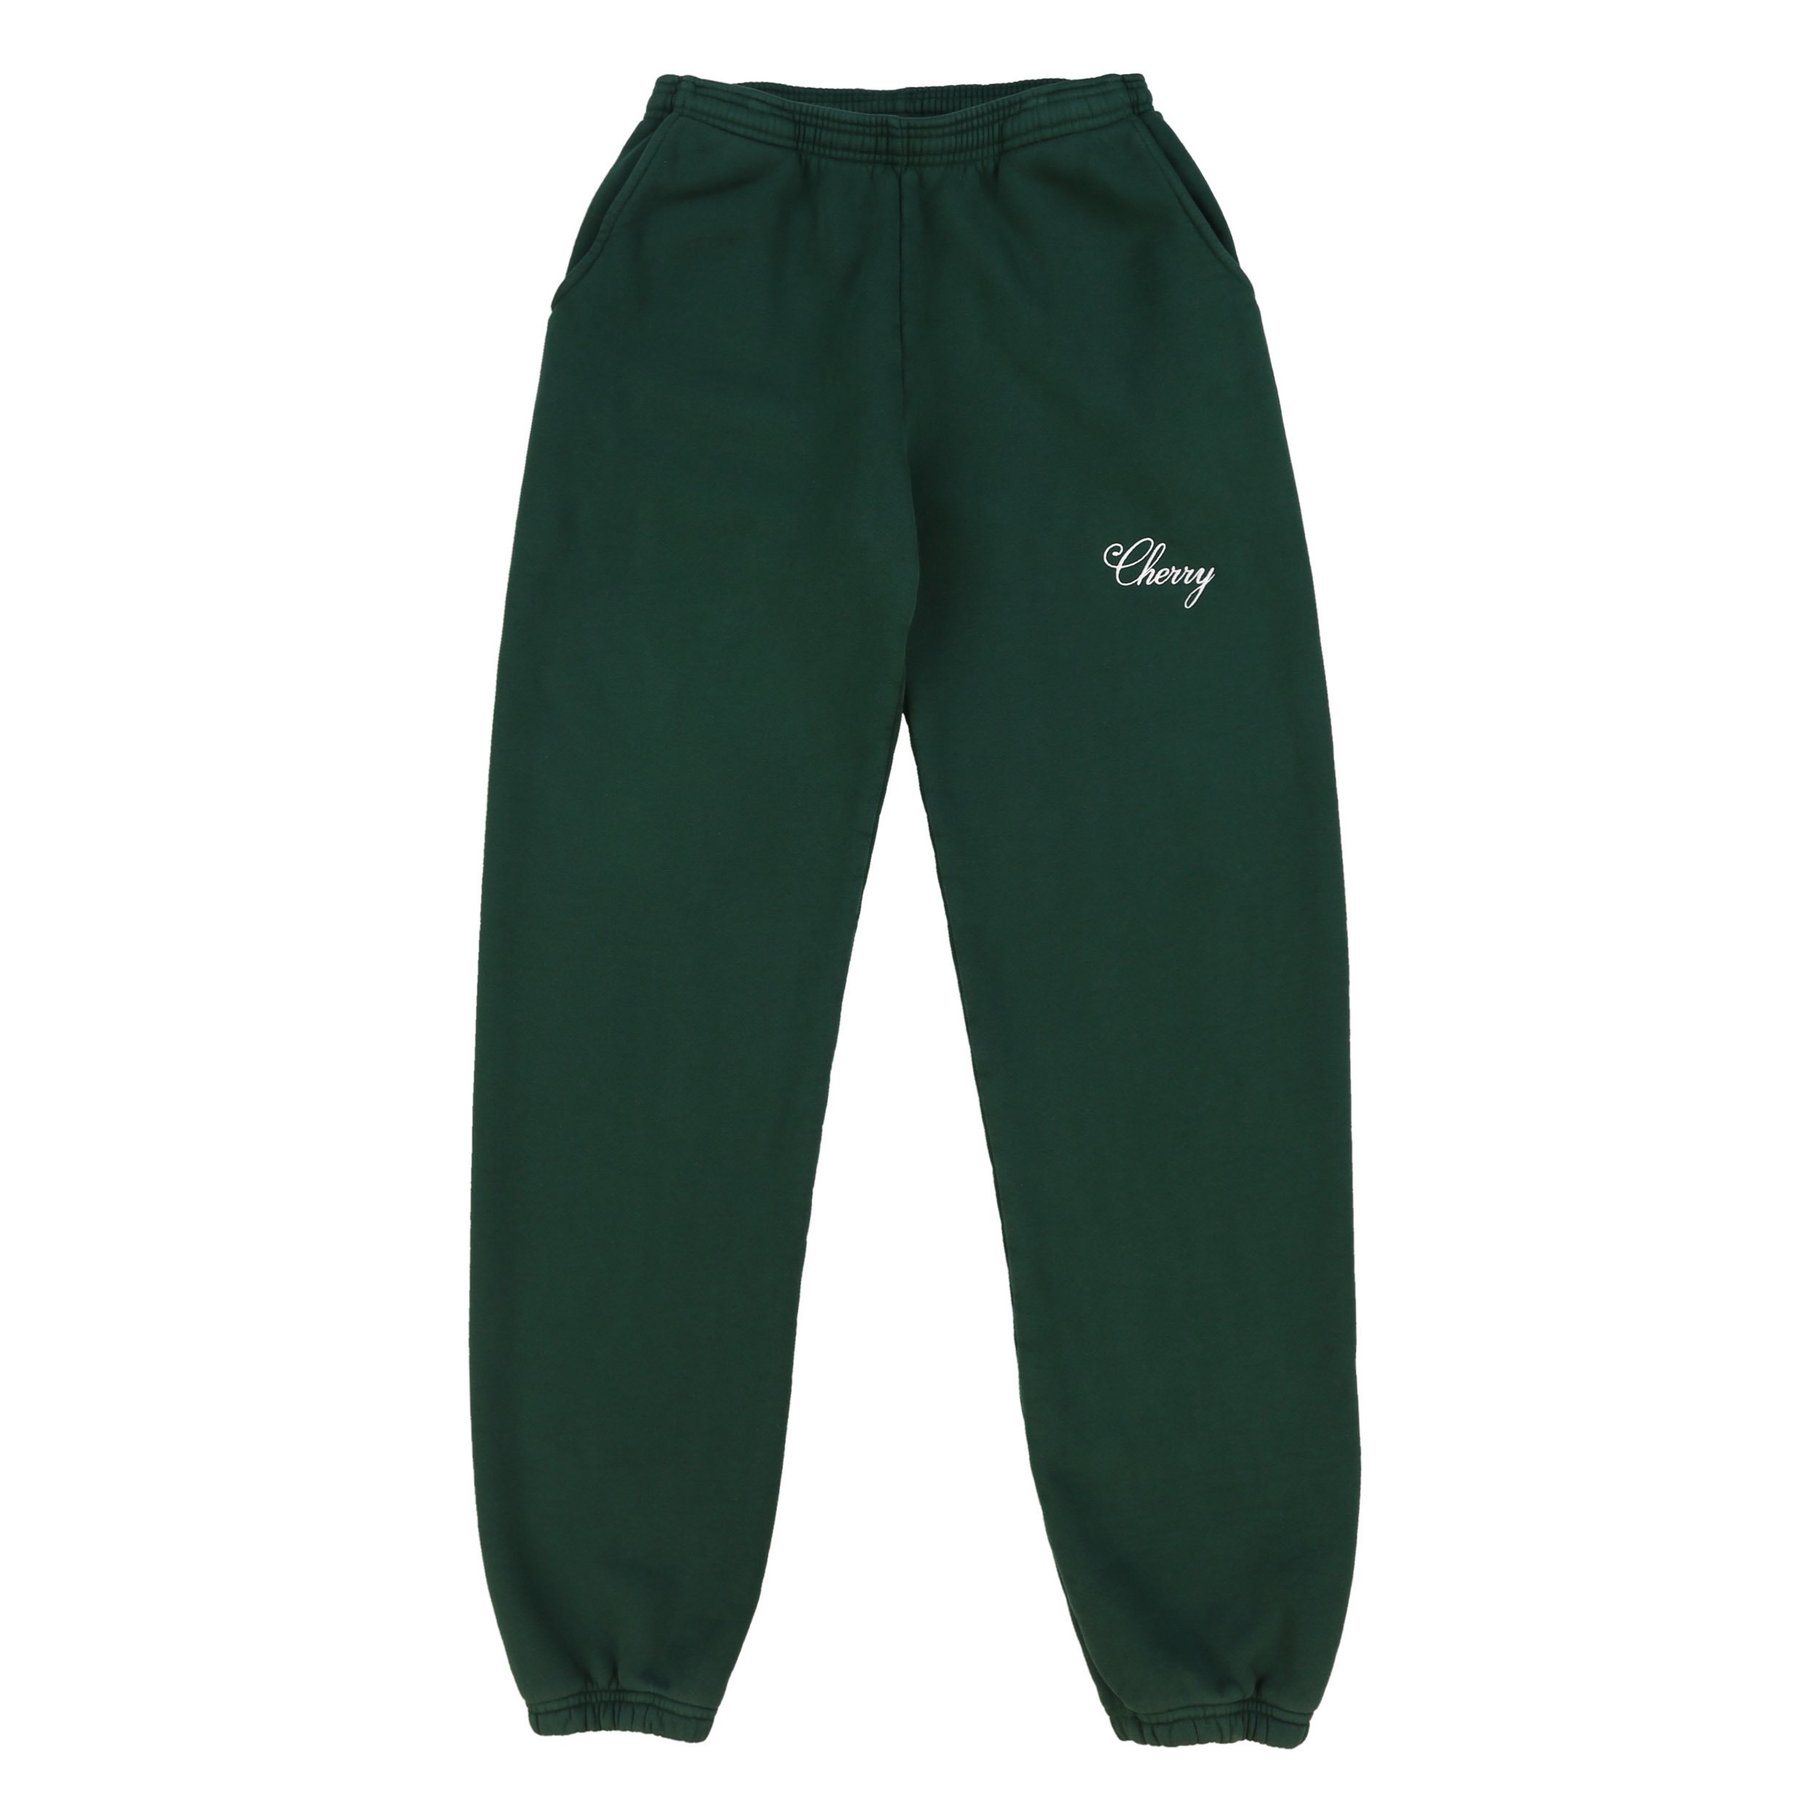 AMERICAN CLASSIC SWEATPANTS by Cherry, available on cherryla.com Kendall Jenner Pants Exact Product